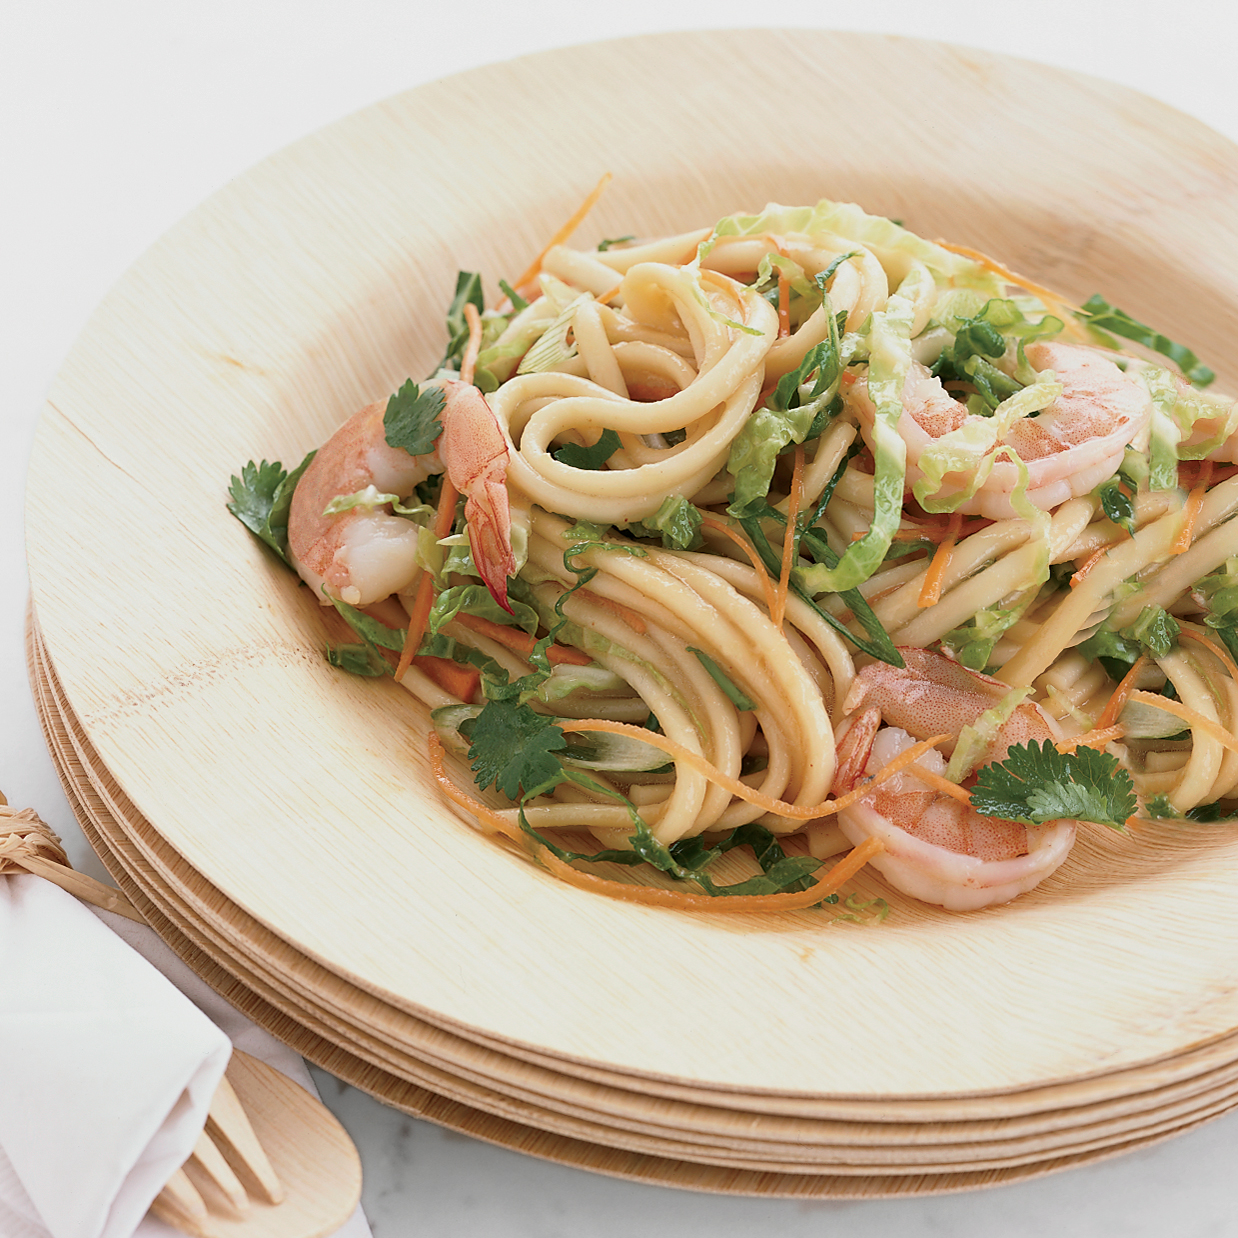 200805-r-shrimp-noodle-salad.jpg